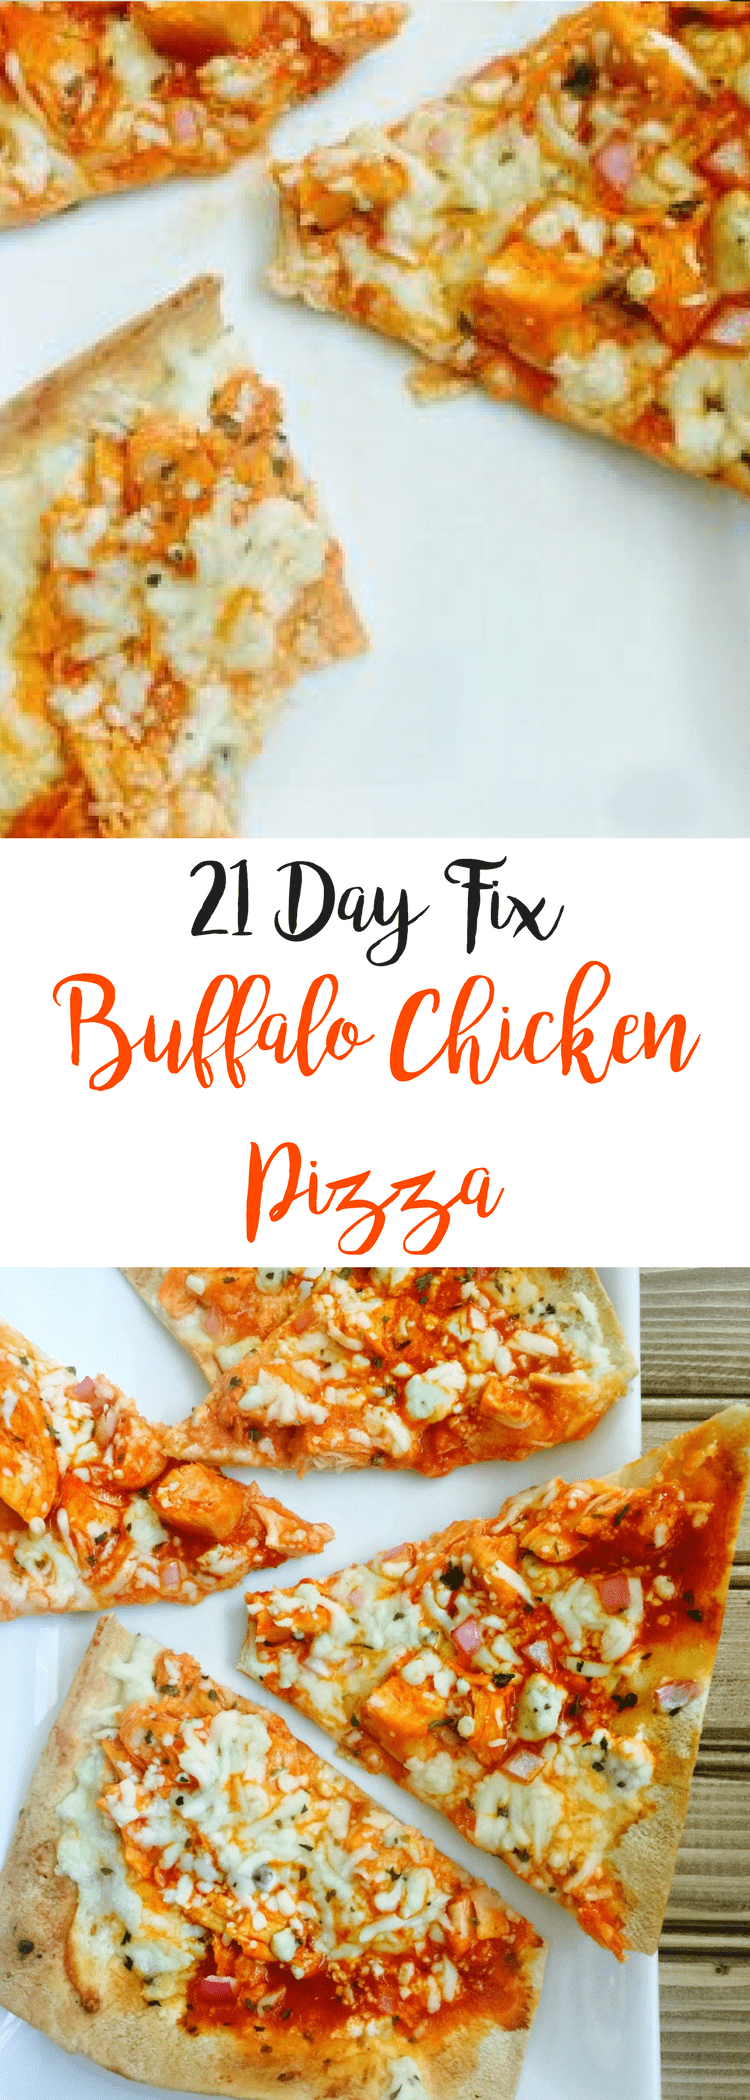 21 Day Fix Buffalo Chicken Pizza | Confessions of a Fit Foodie